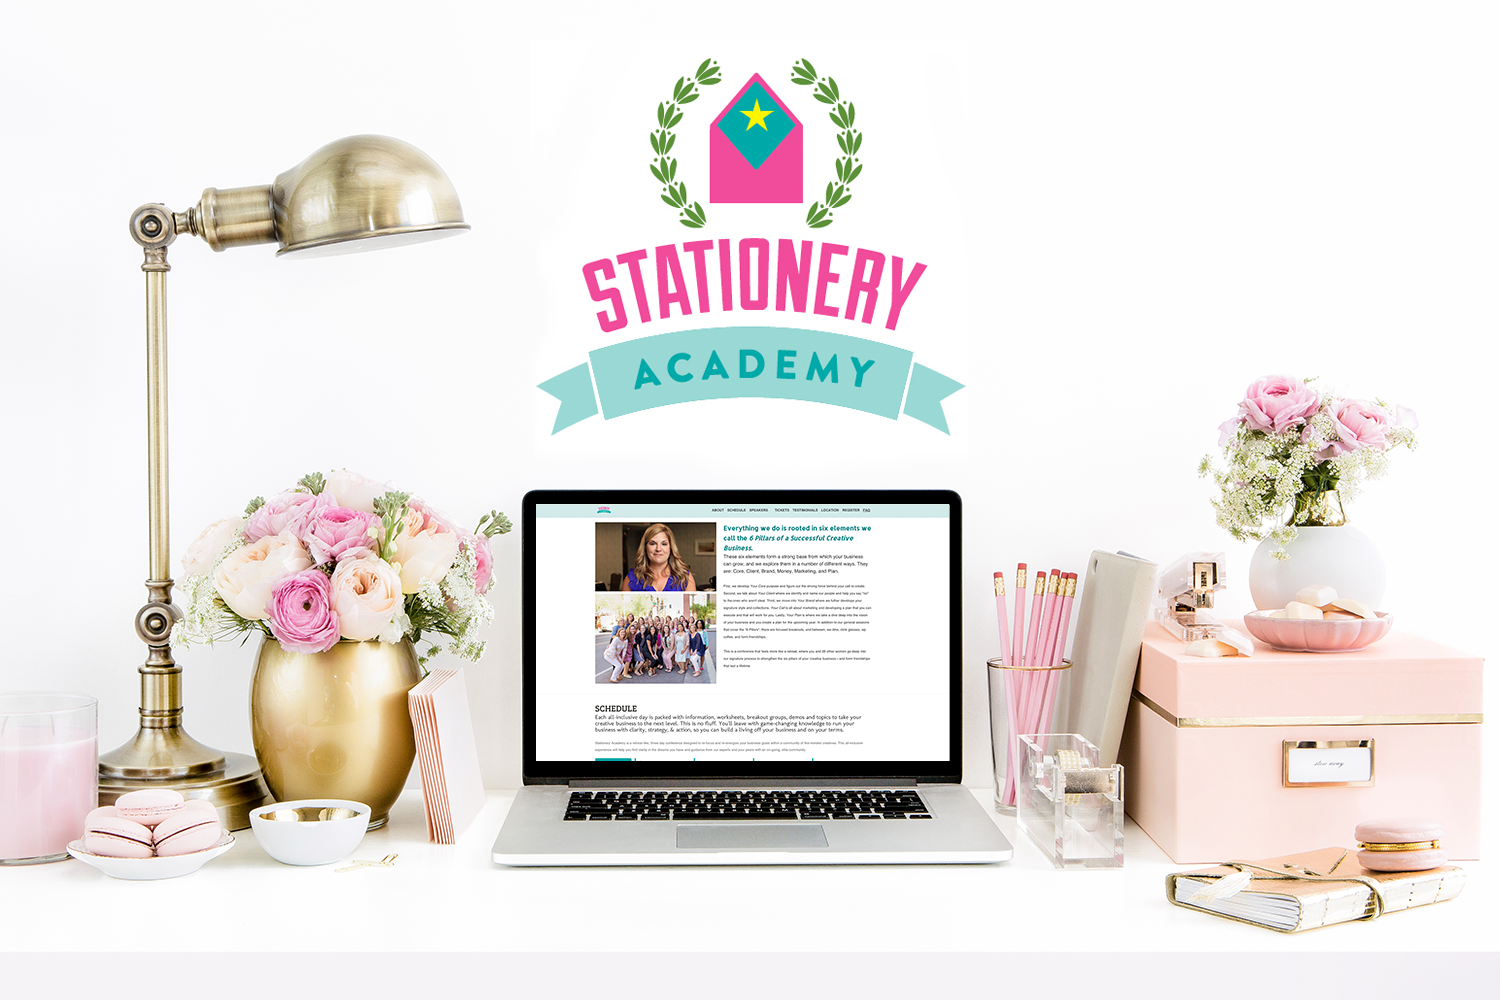 Stationery Academy Session 2016